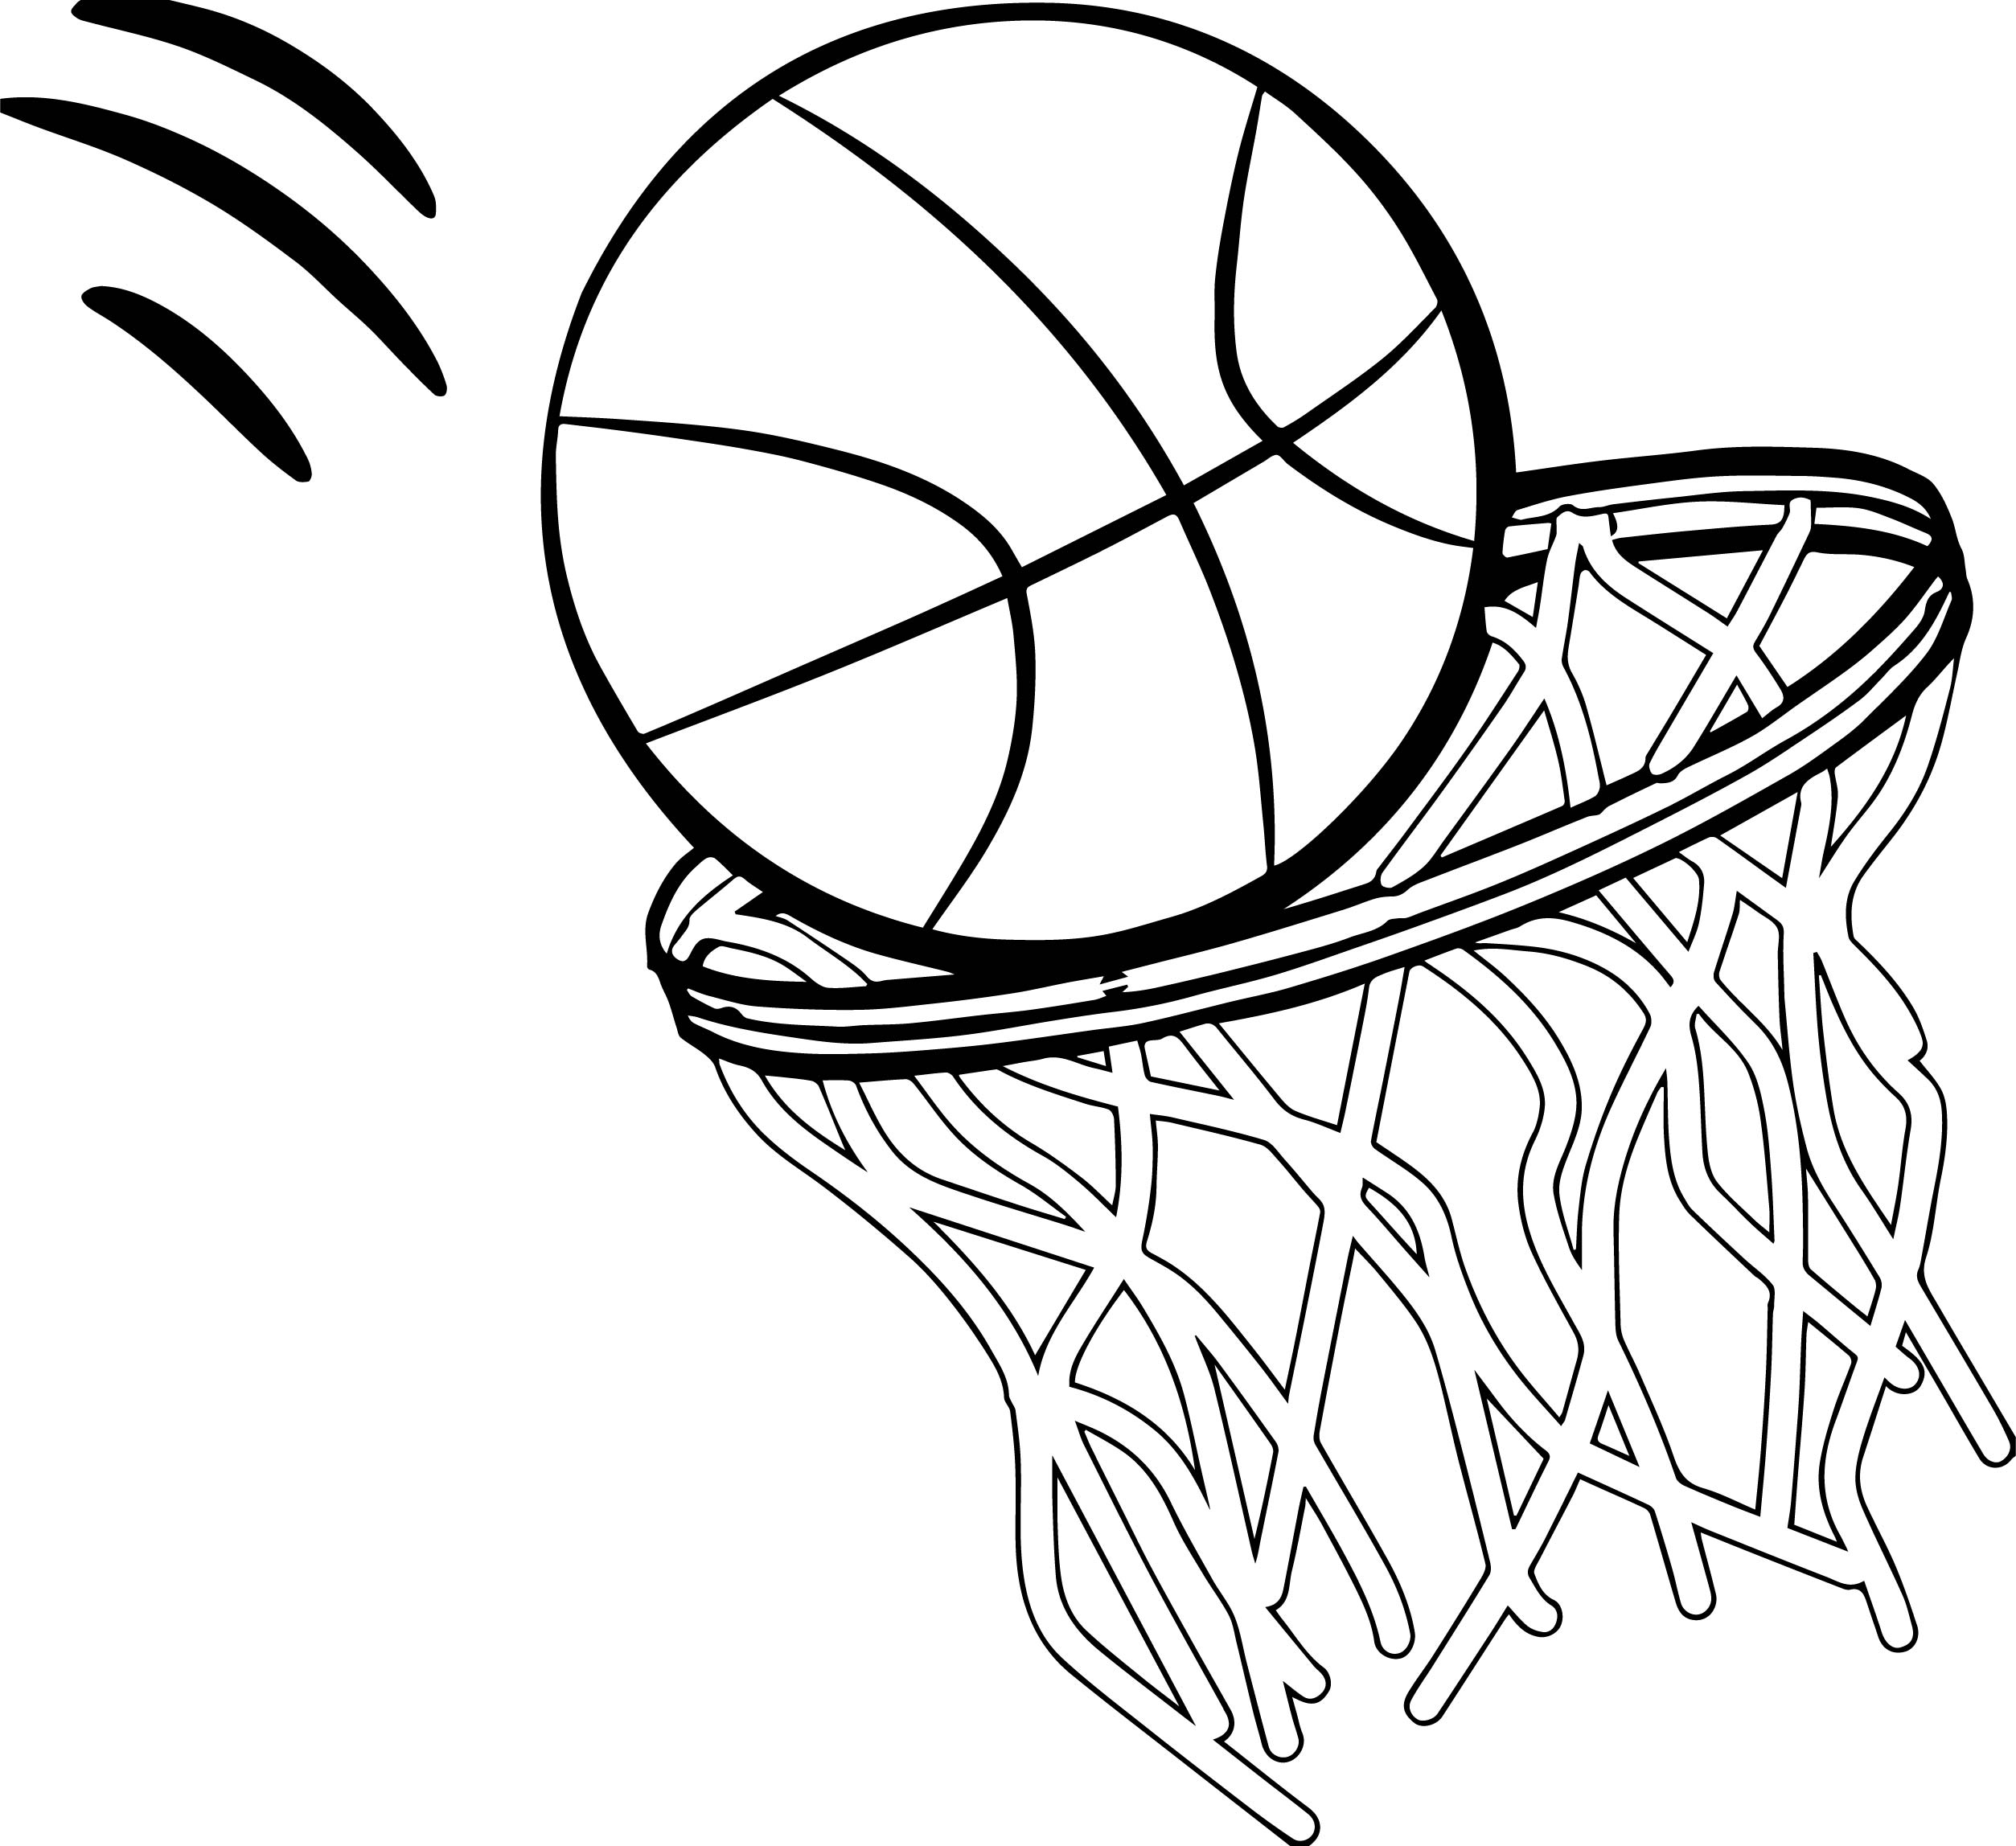 Any Basketball Free Coloring Page